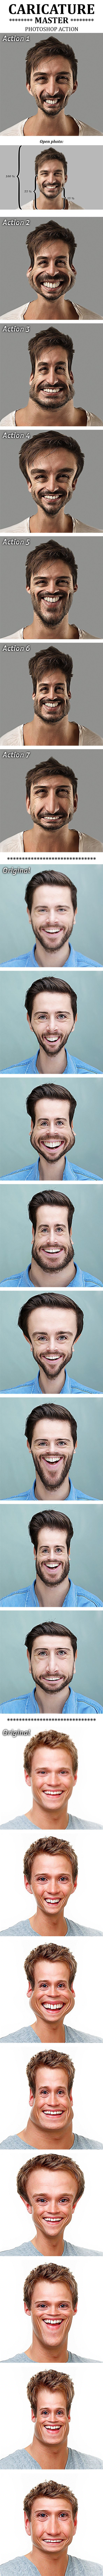 Caricature Master Photoshop Action - Photo Effects Actions